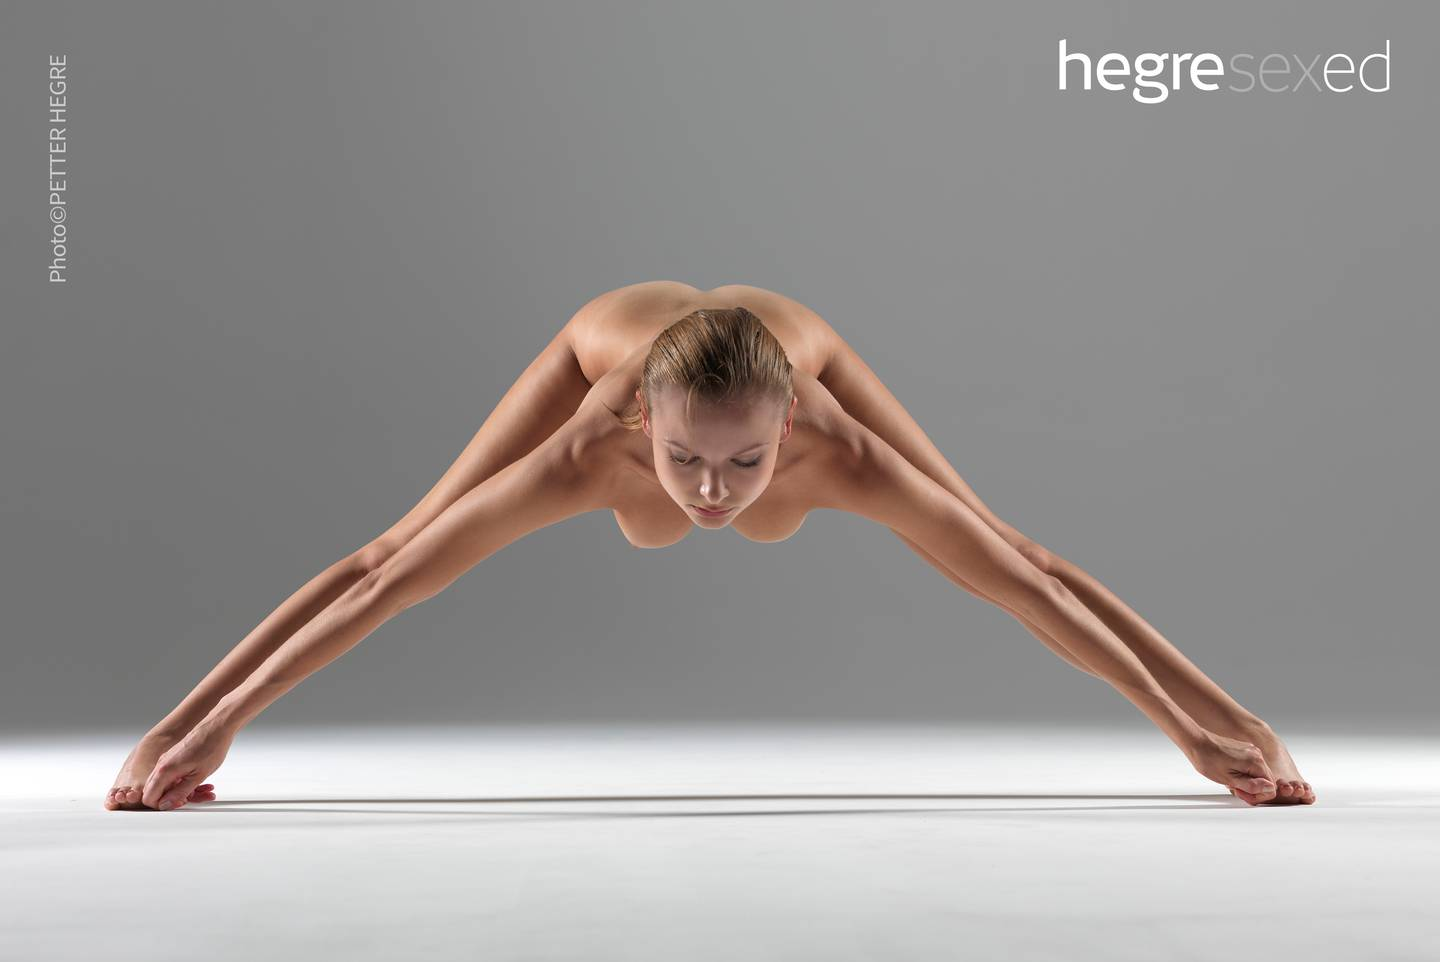 7-ways-yoga-boosts-your-sex-life-7-content-image-1440x